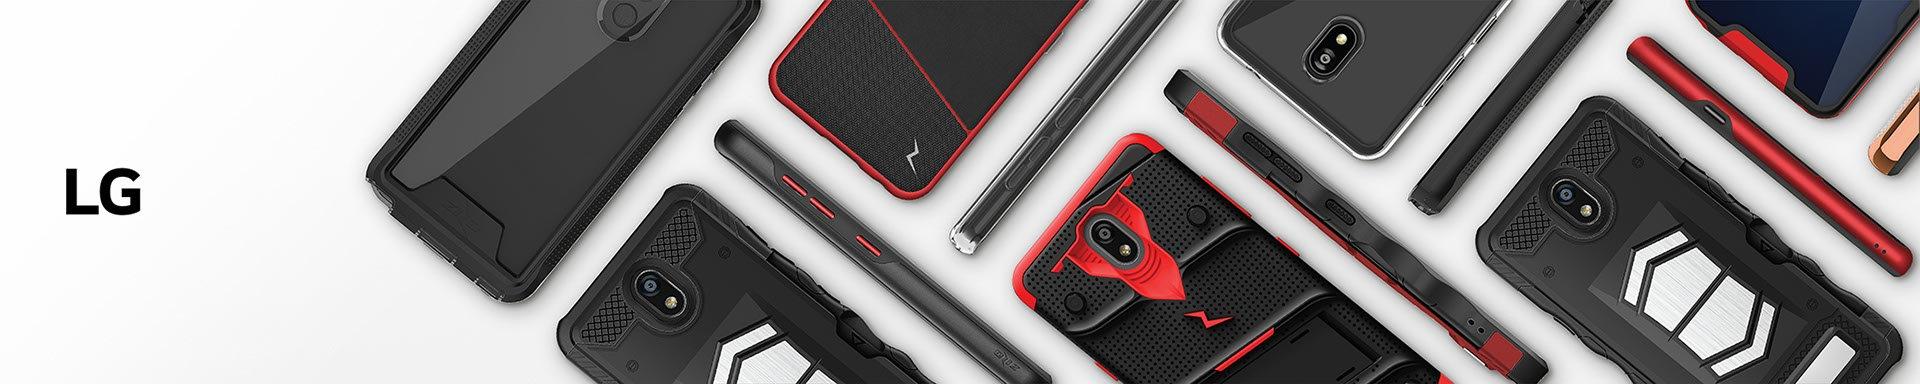 Cases for LG devices